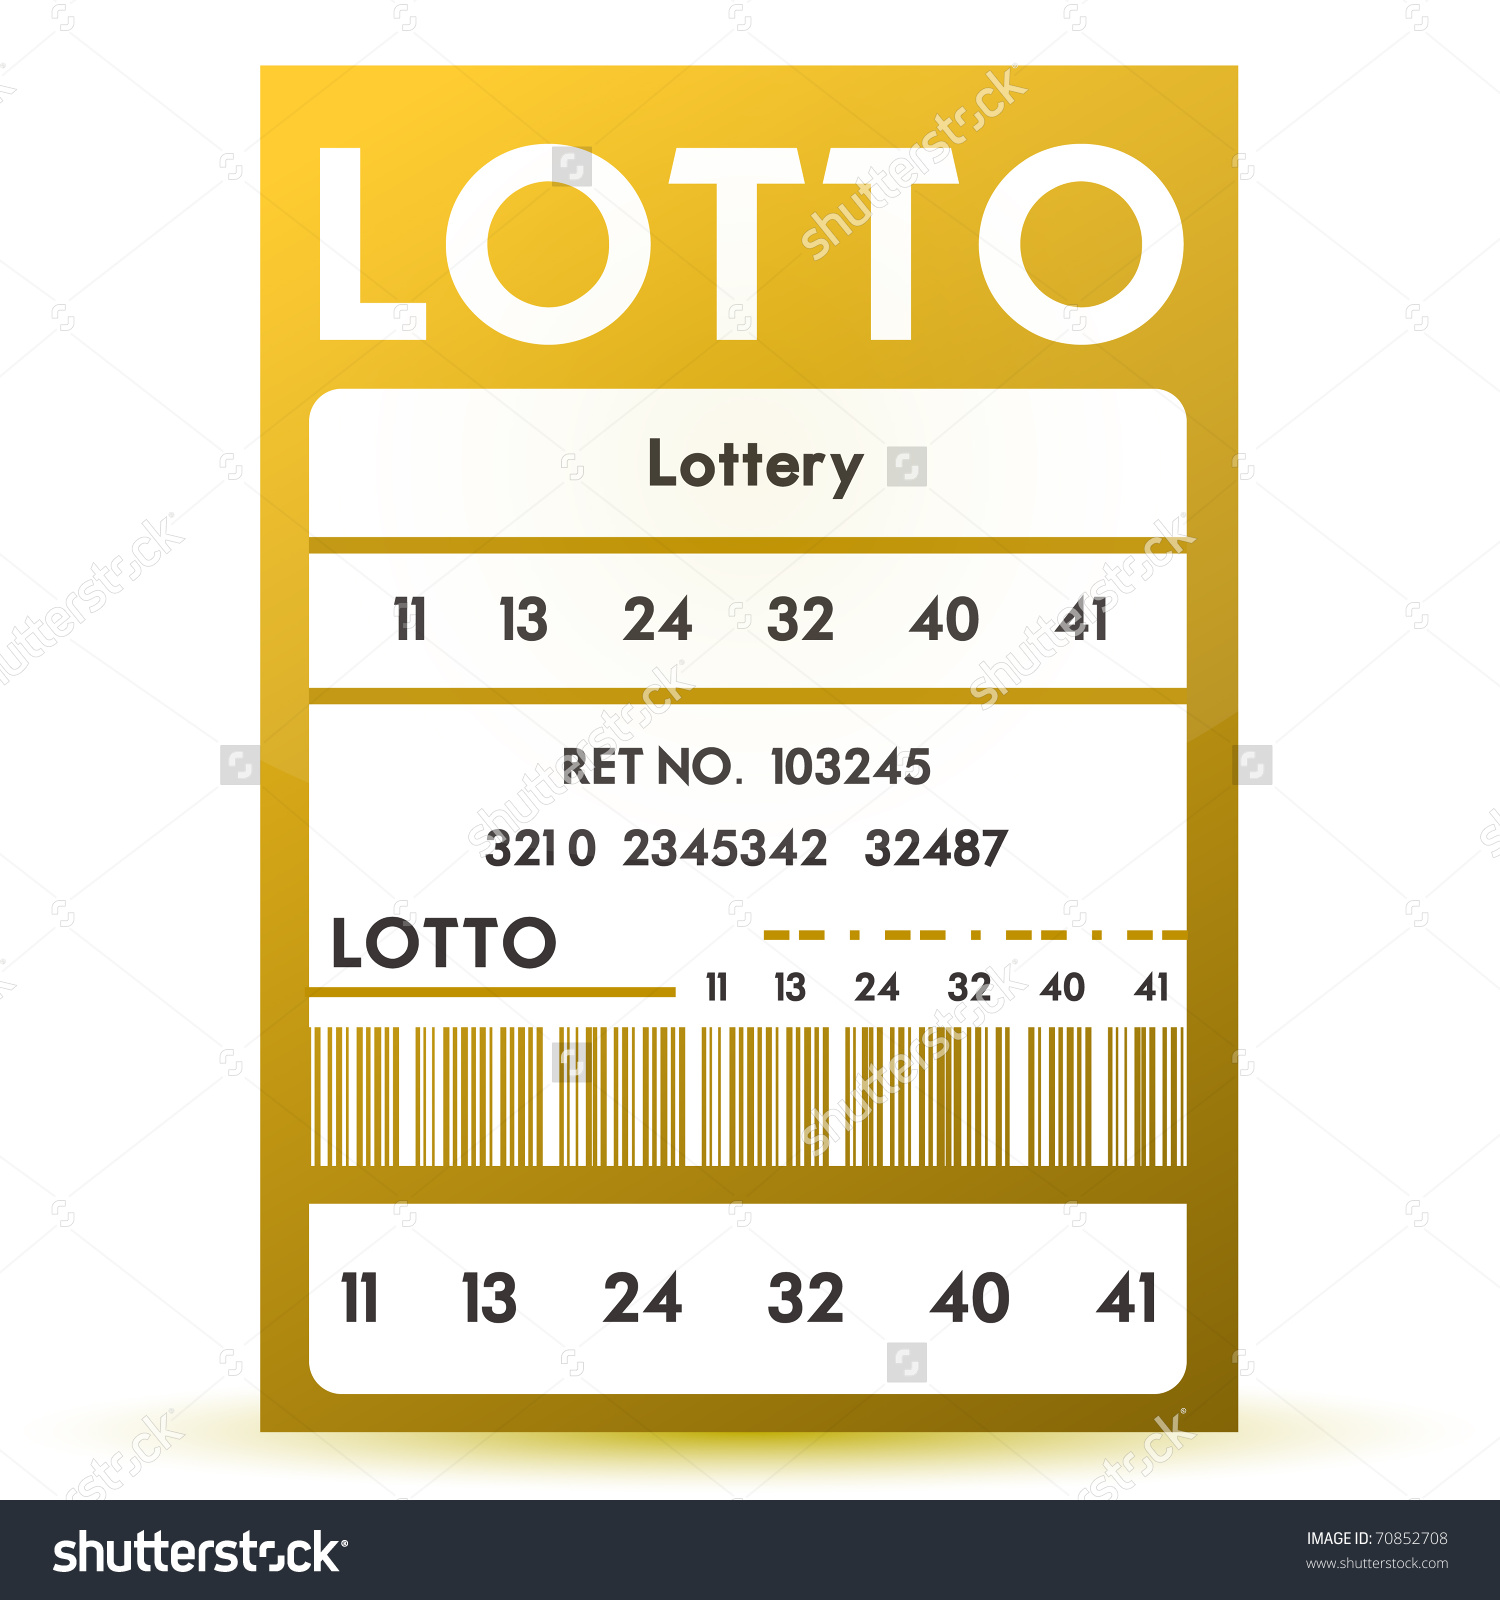 Lottery Ticket Clip Art